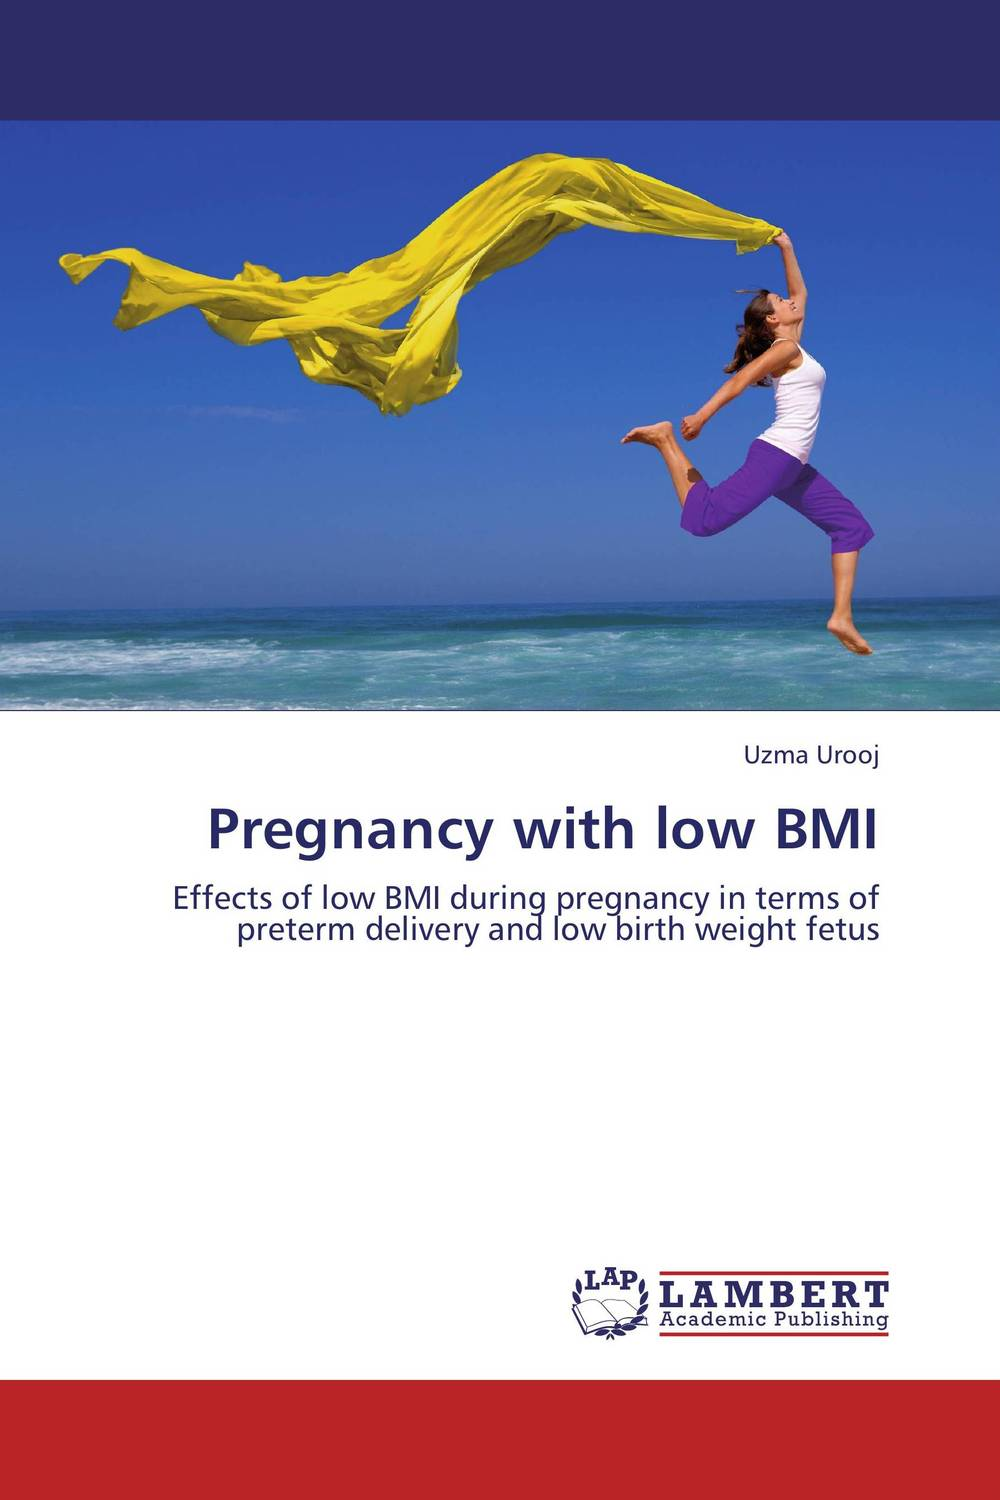 Pregnancy with low BMI manjari singh introducing and reviewing preterm delivery and low birth weight